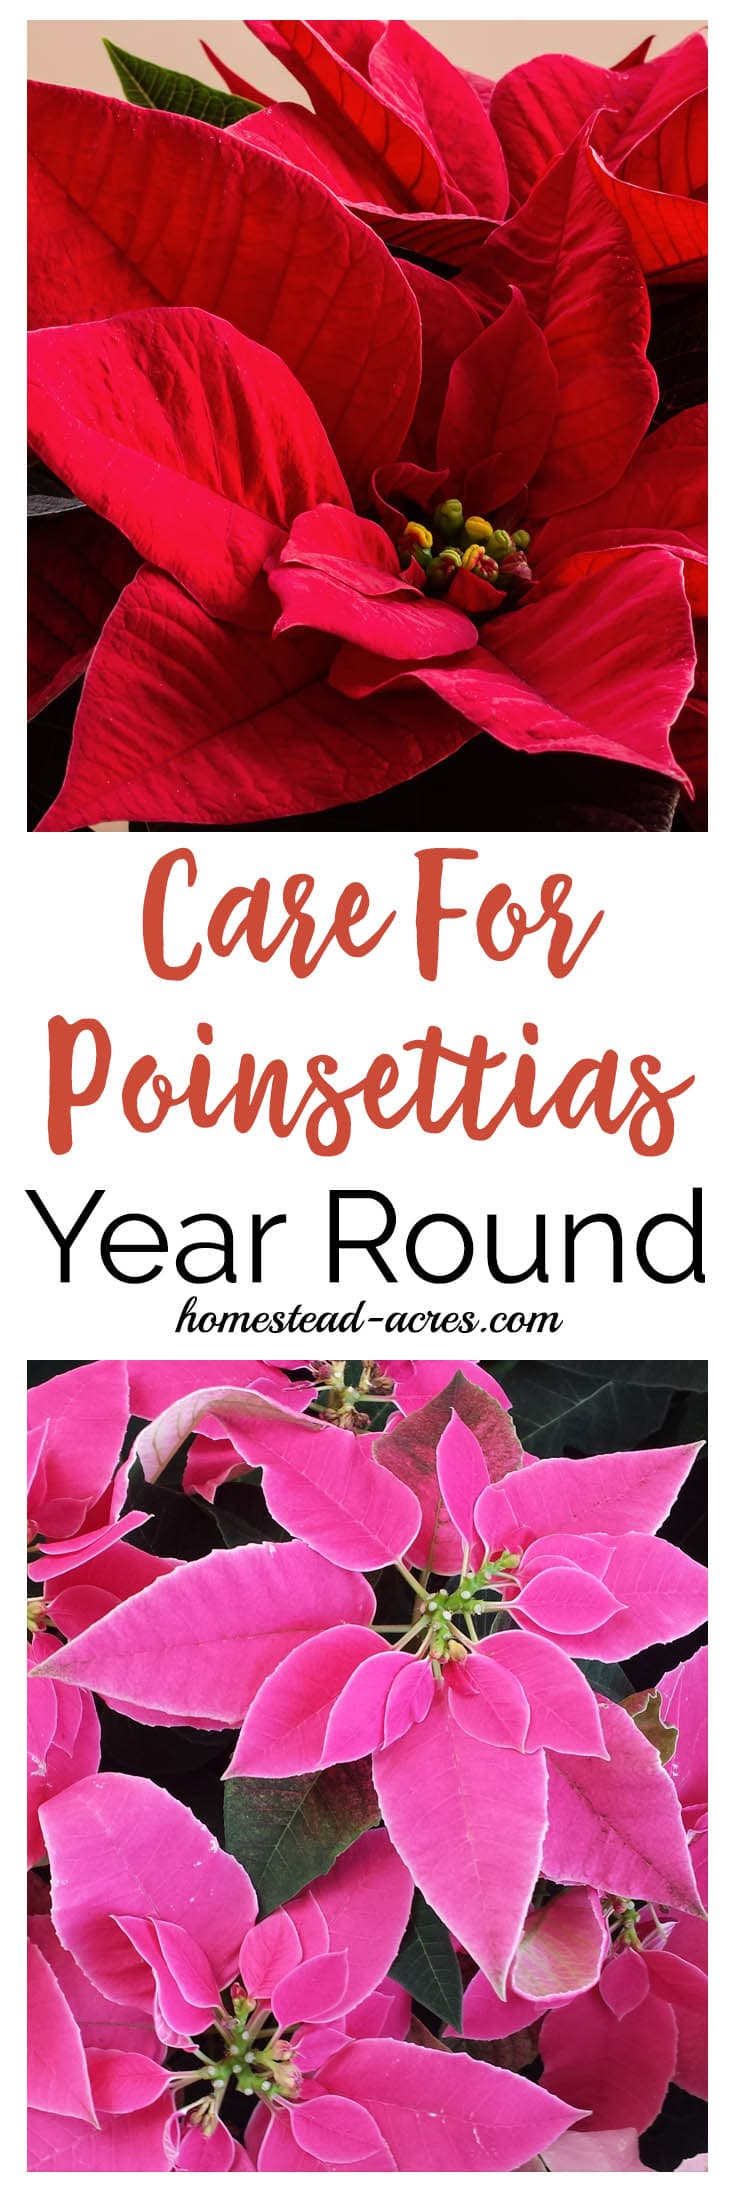 How To Care For Poinsettias Year Round Homestead Acres